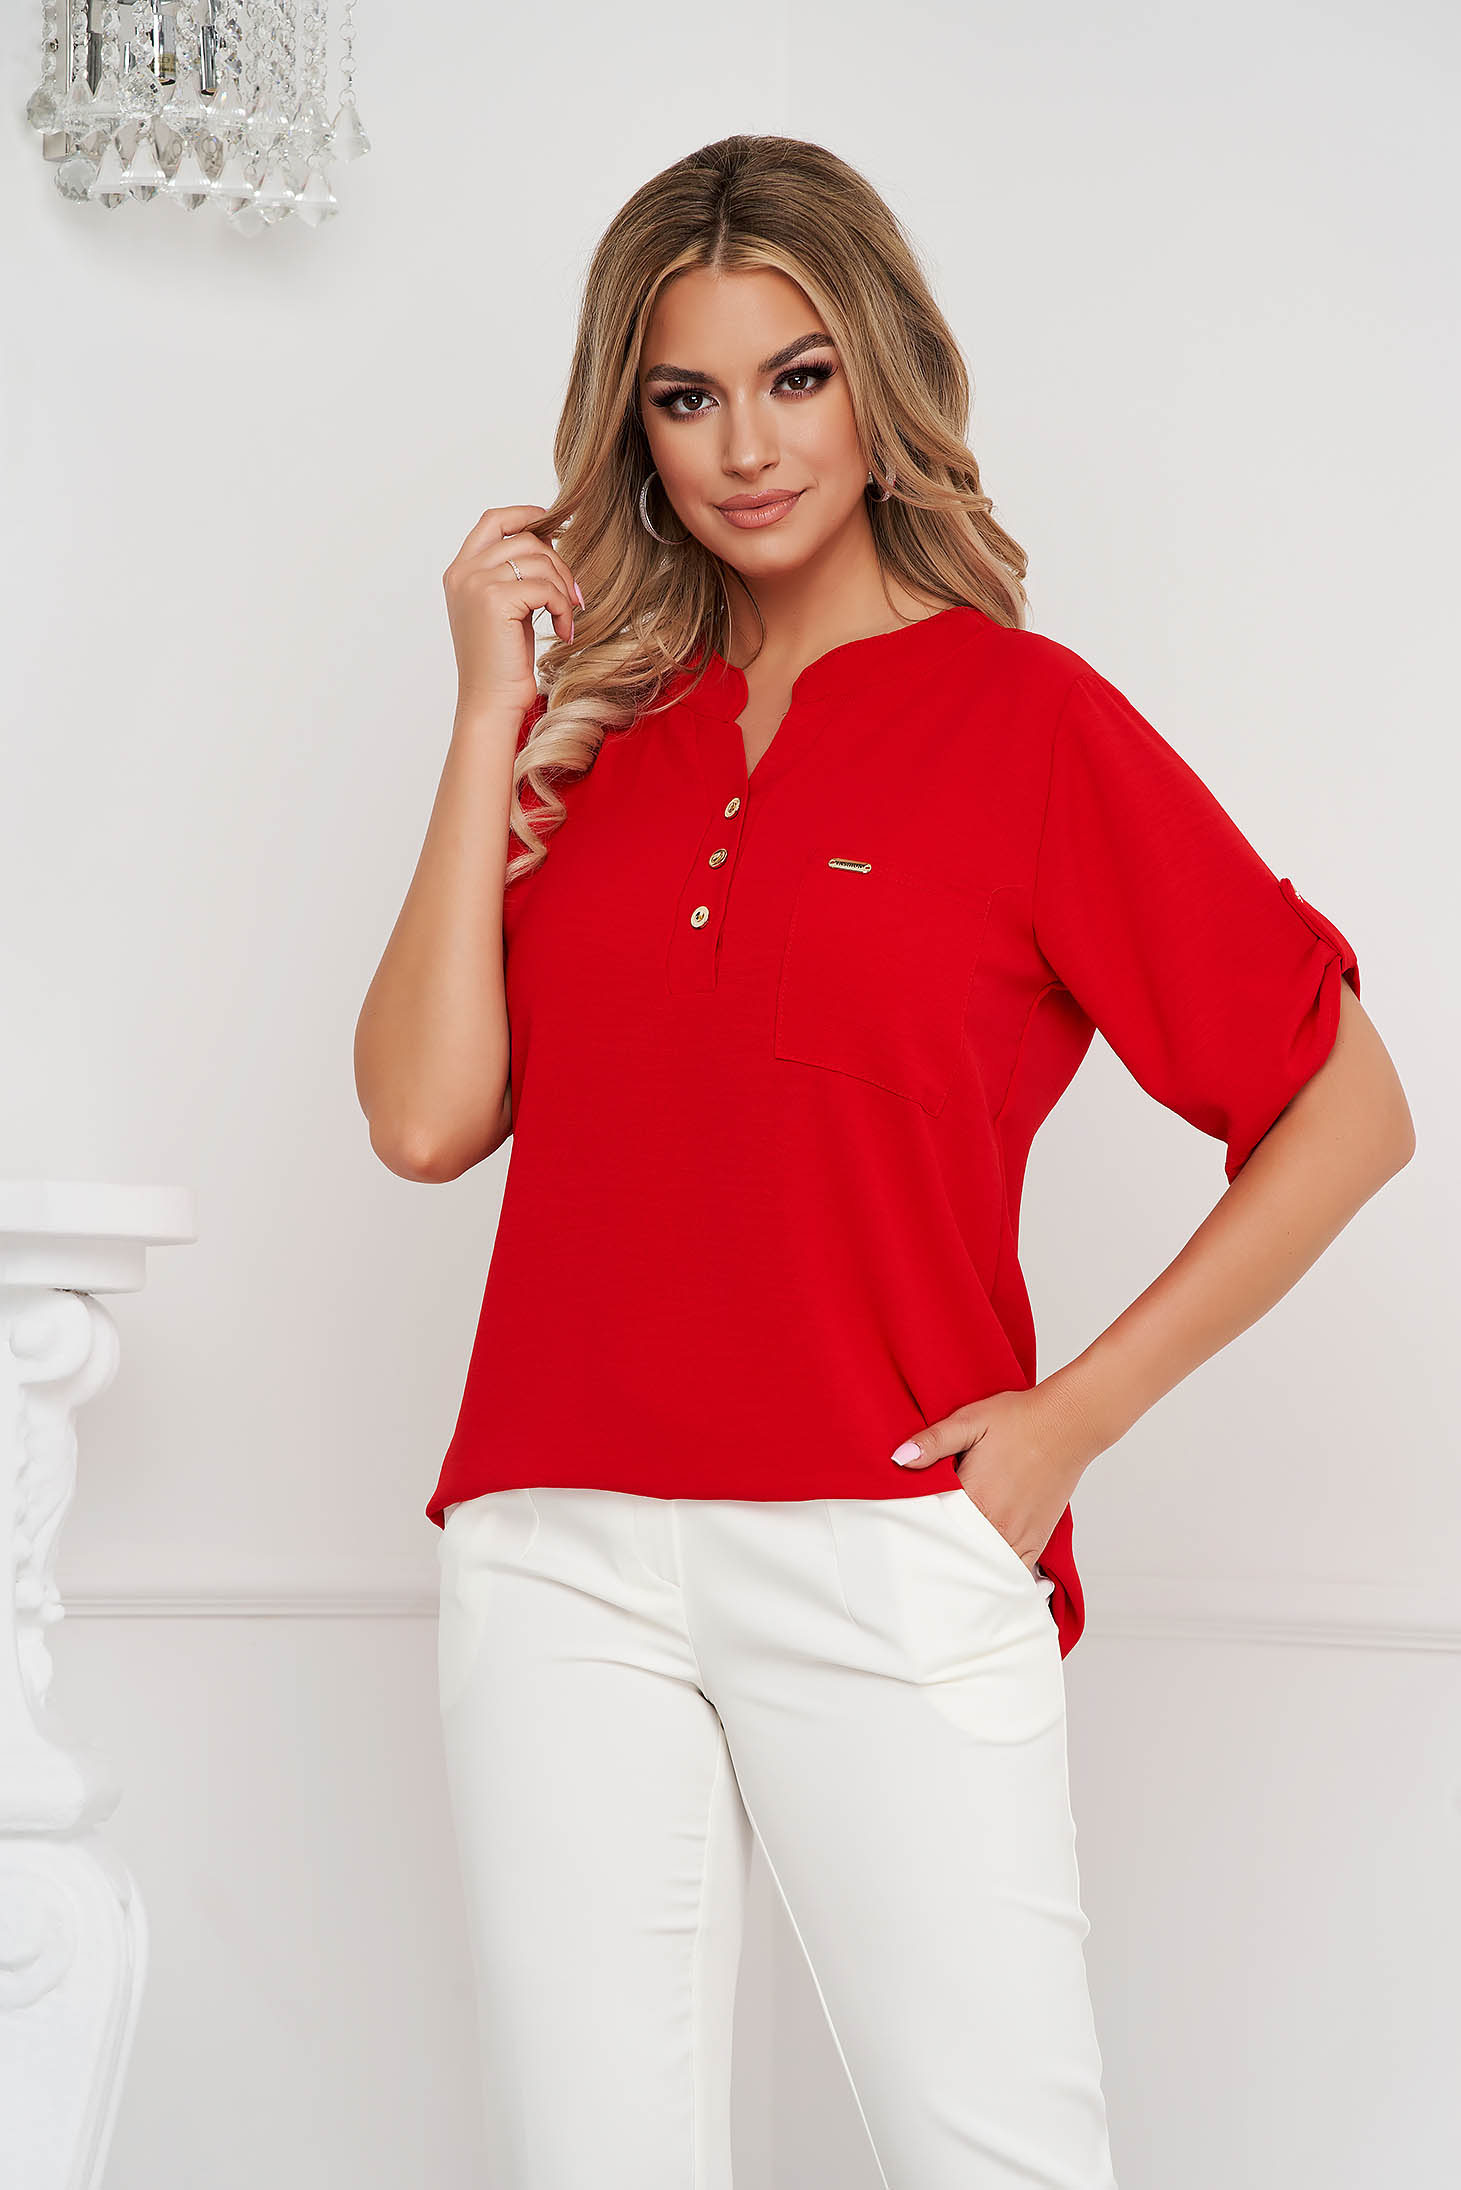 Red women`s blouse loose fit wrinkled material a front pocket